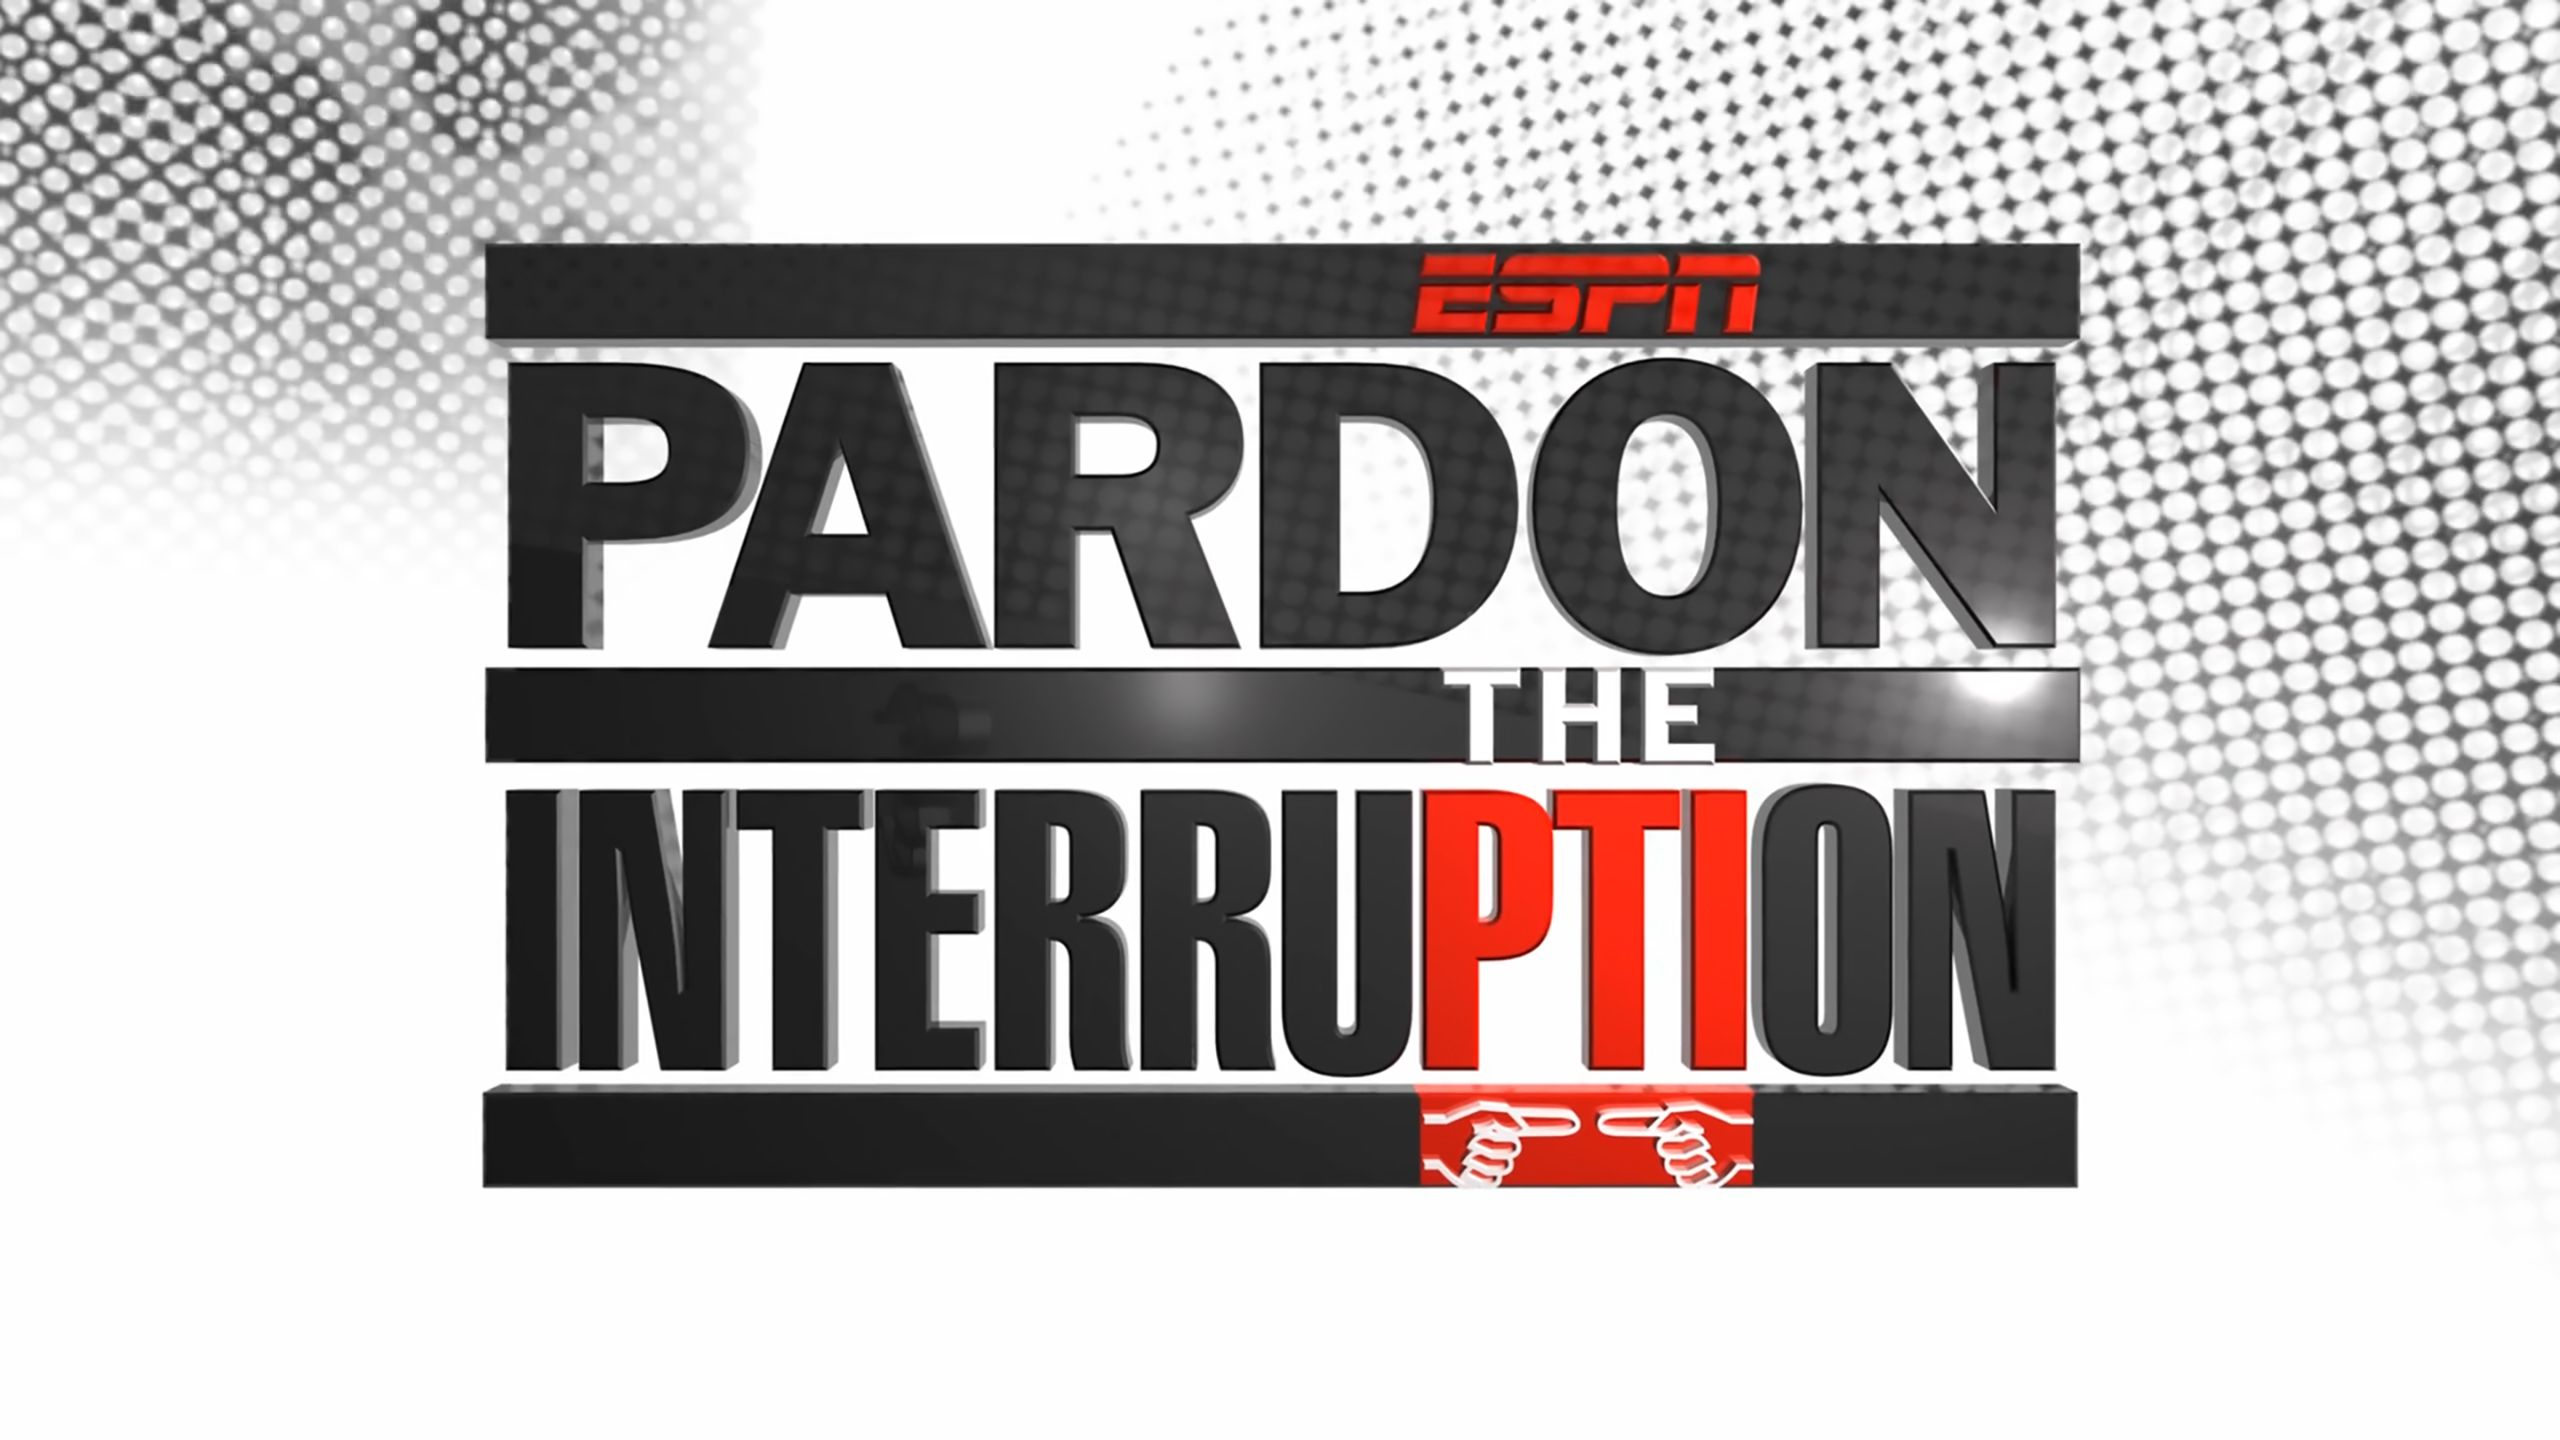 Fri, 12/15 - Pardon The Interruption